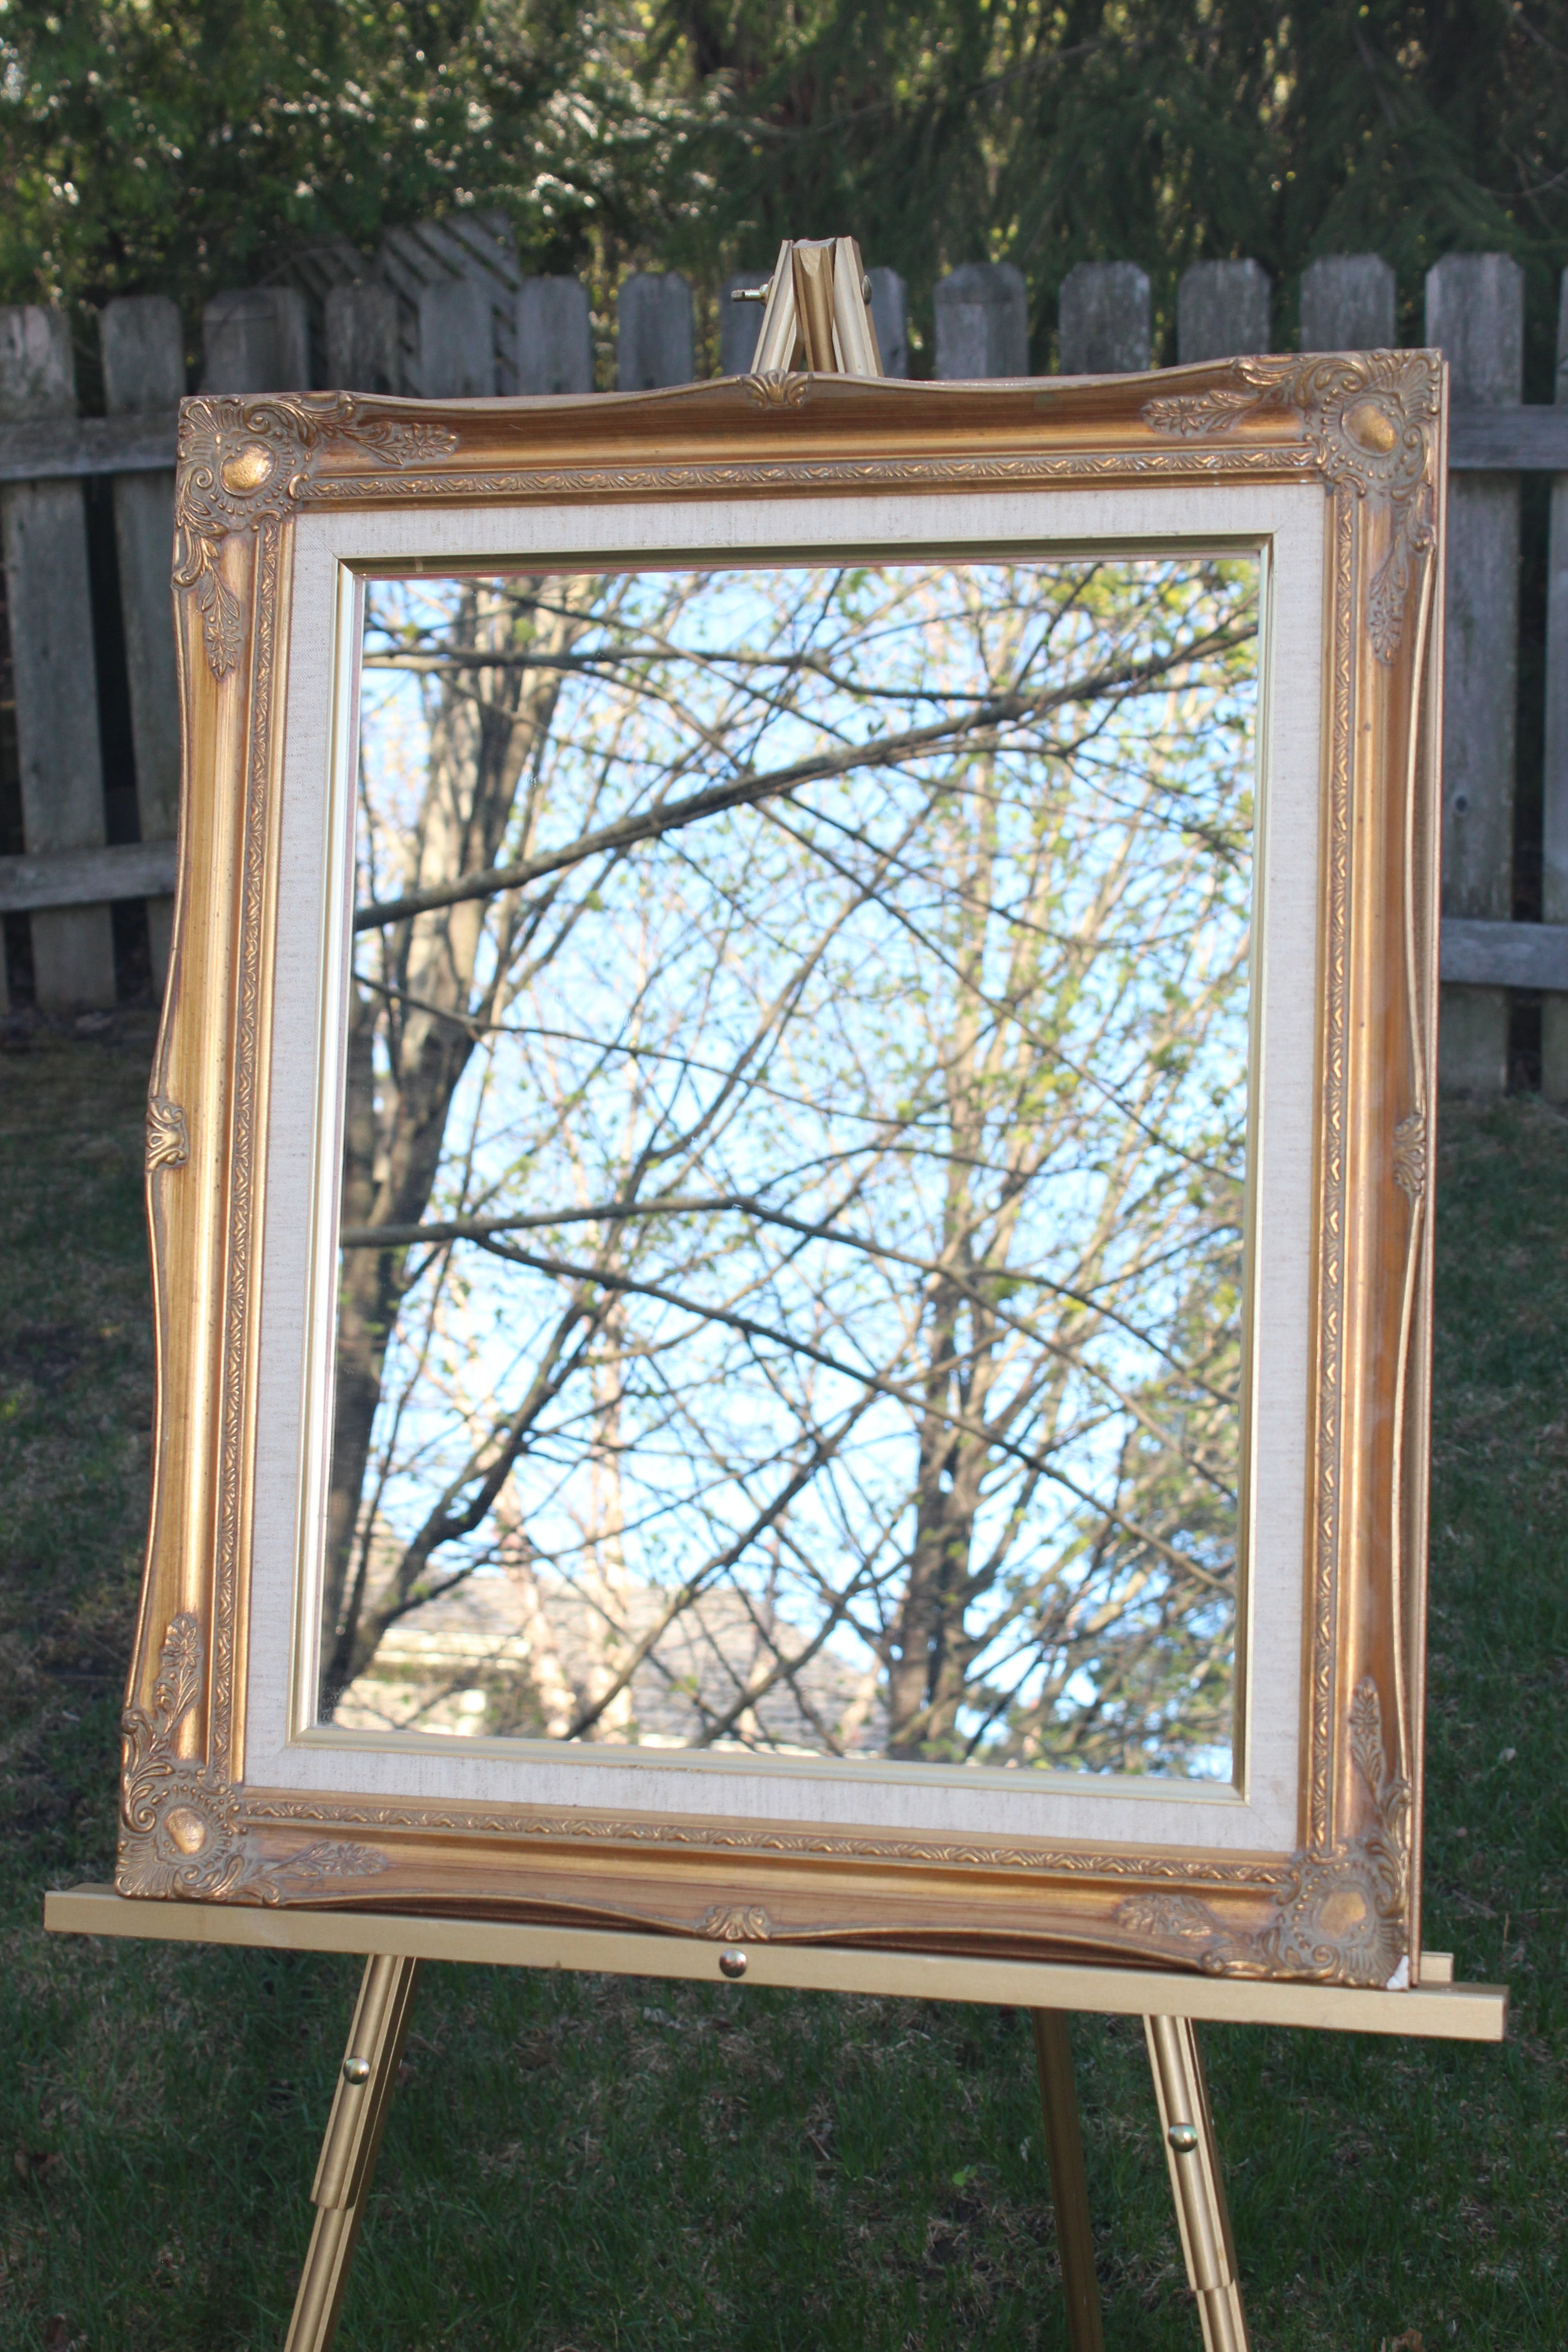 Gold Mirror 2 - 1.5ft W x 2ft H